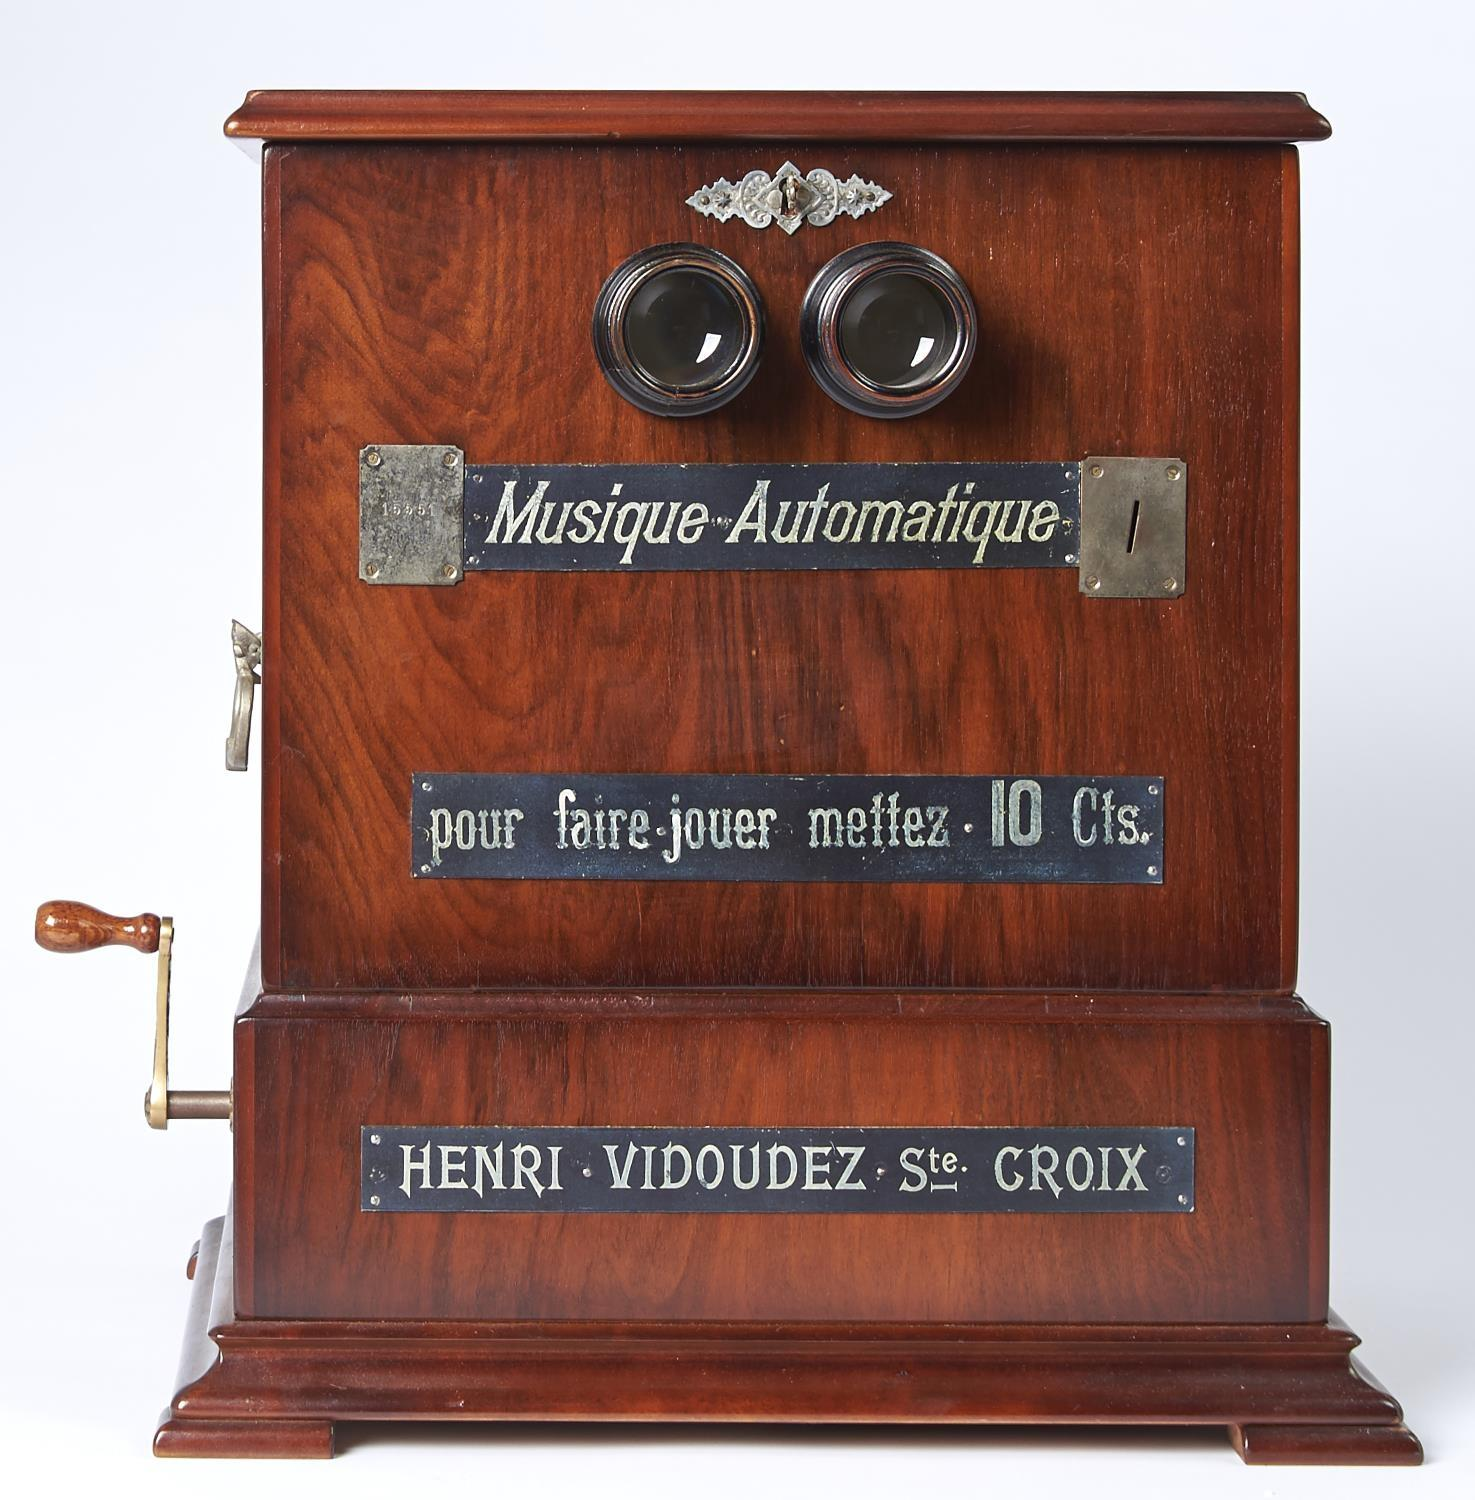 A FINE AND RARE SWISS COIN-IN-THE-SLOT MUSICAL STEREOSCOPE, HENRI VIDOUDEZ, C1885, THE MECHANISM - Image 2 of 5